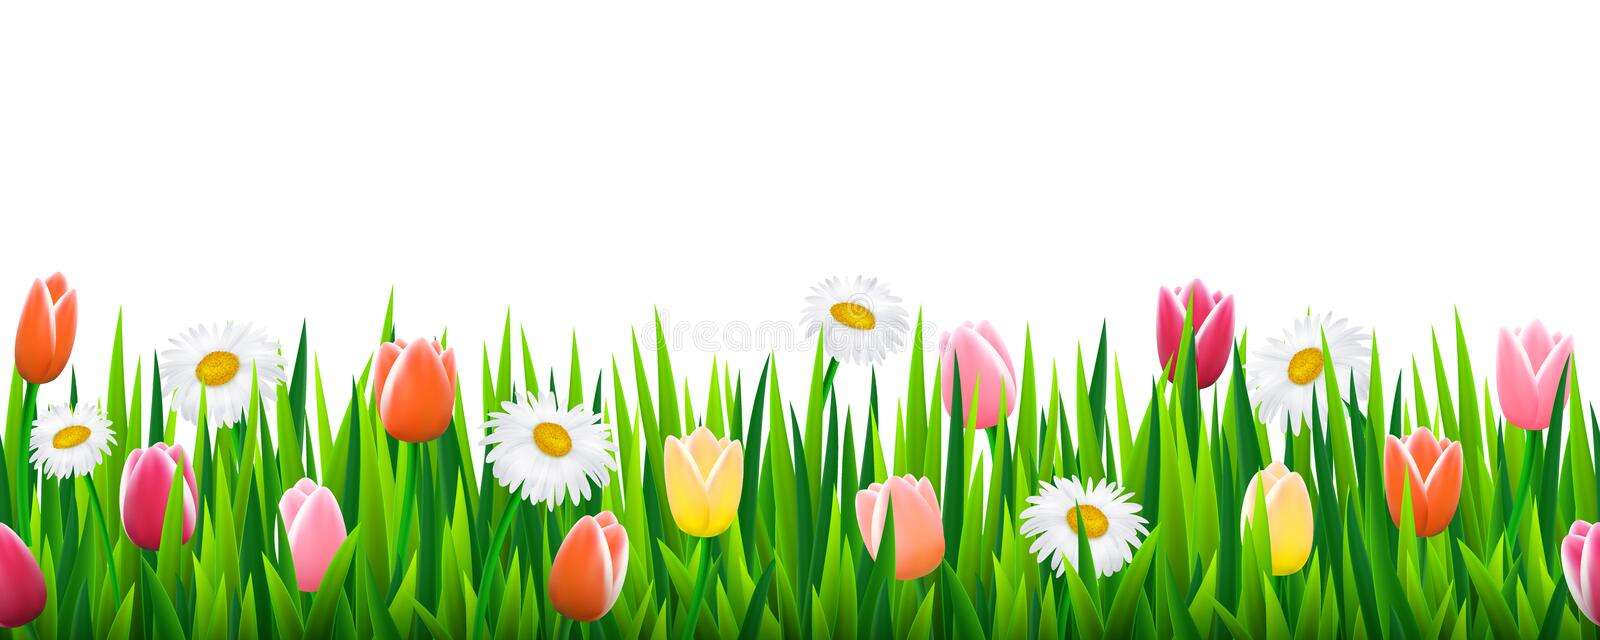 grass and flowers border. Perfect Flowers Download Seamless Border With Grass And Flowers Stock Vector  Illustration  Of Environment Design Inside